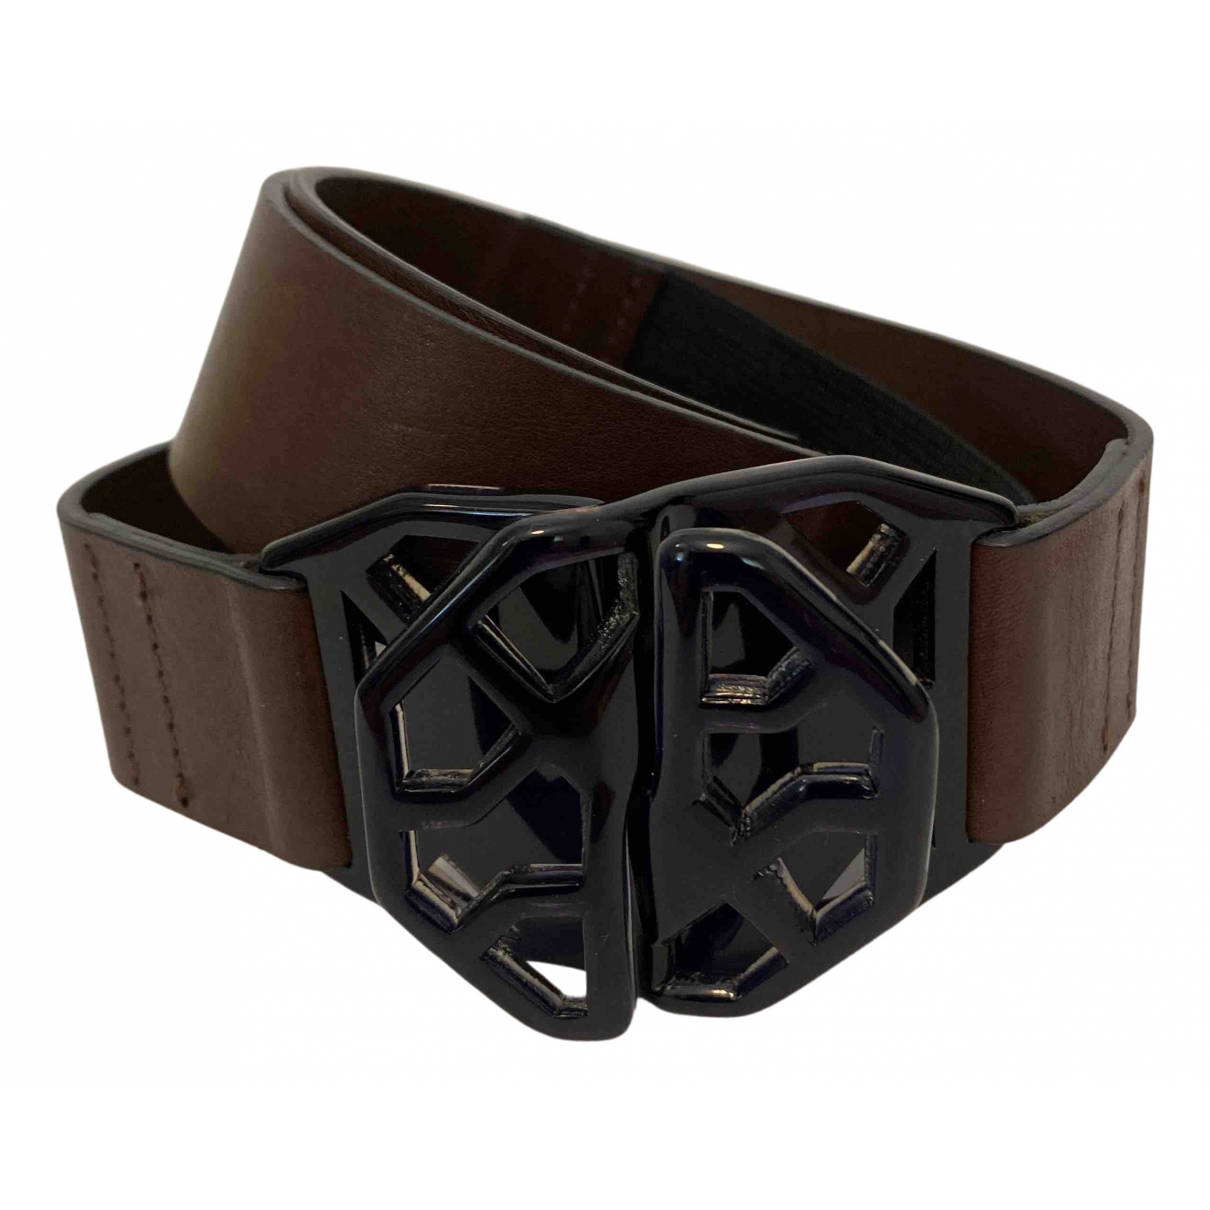 Marni N Brown Leather belt for Women 85 cm